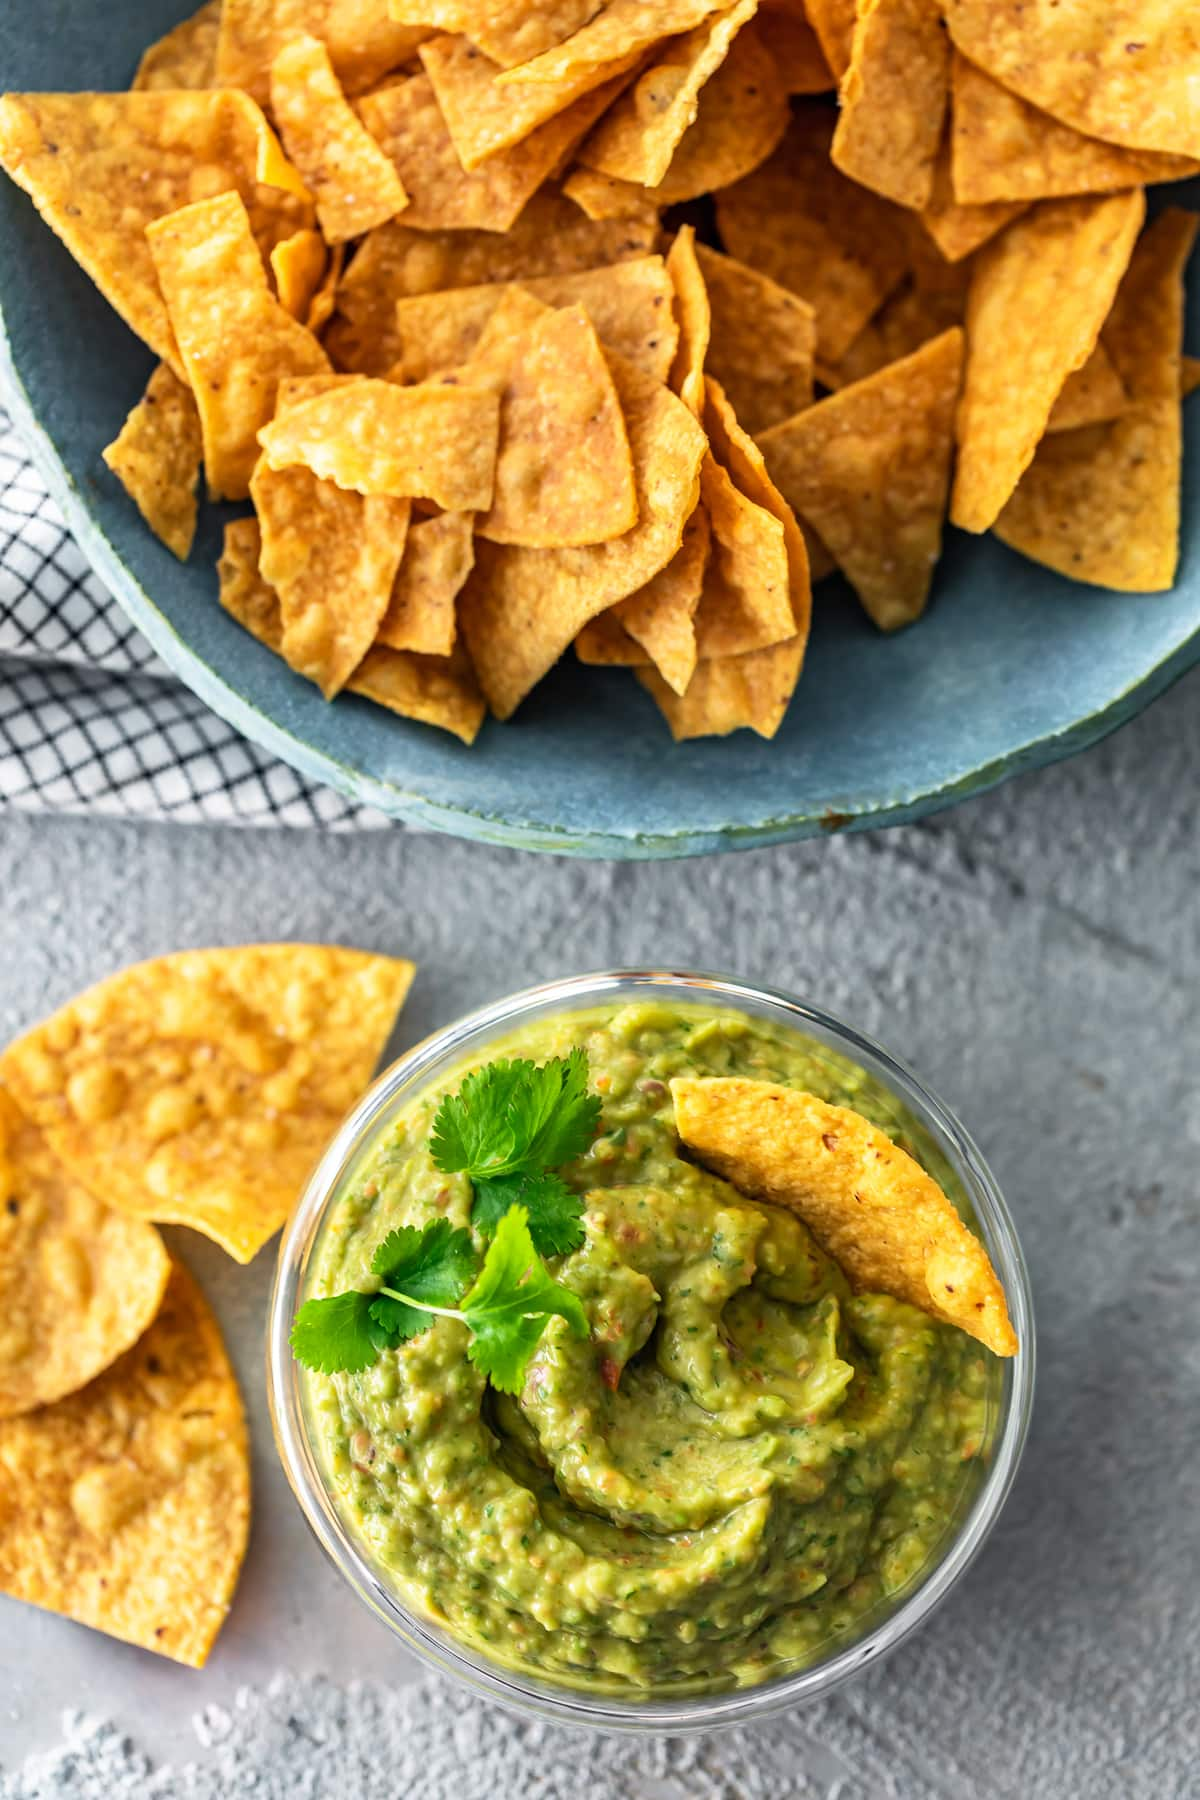 bowl of tortilla chips next to a bowl of dip